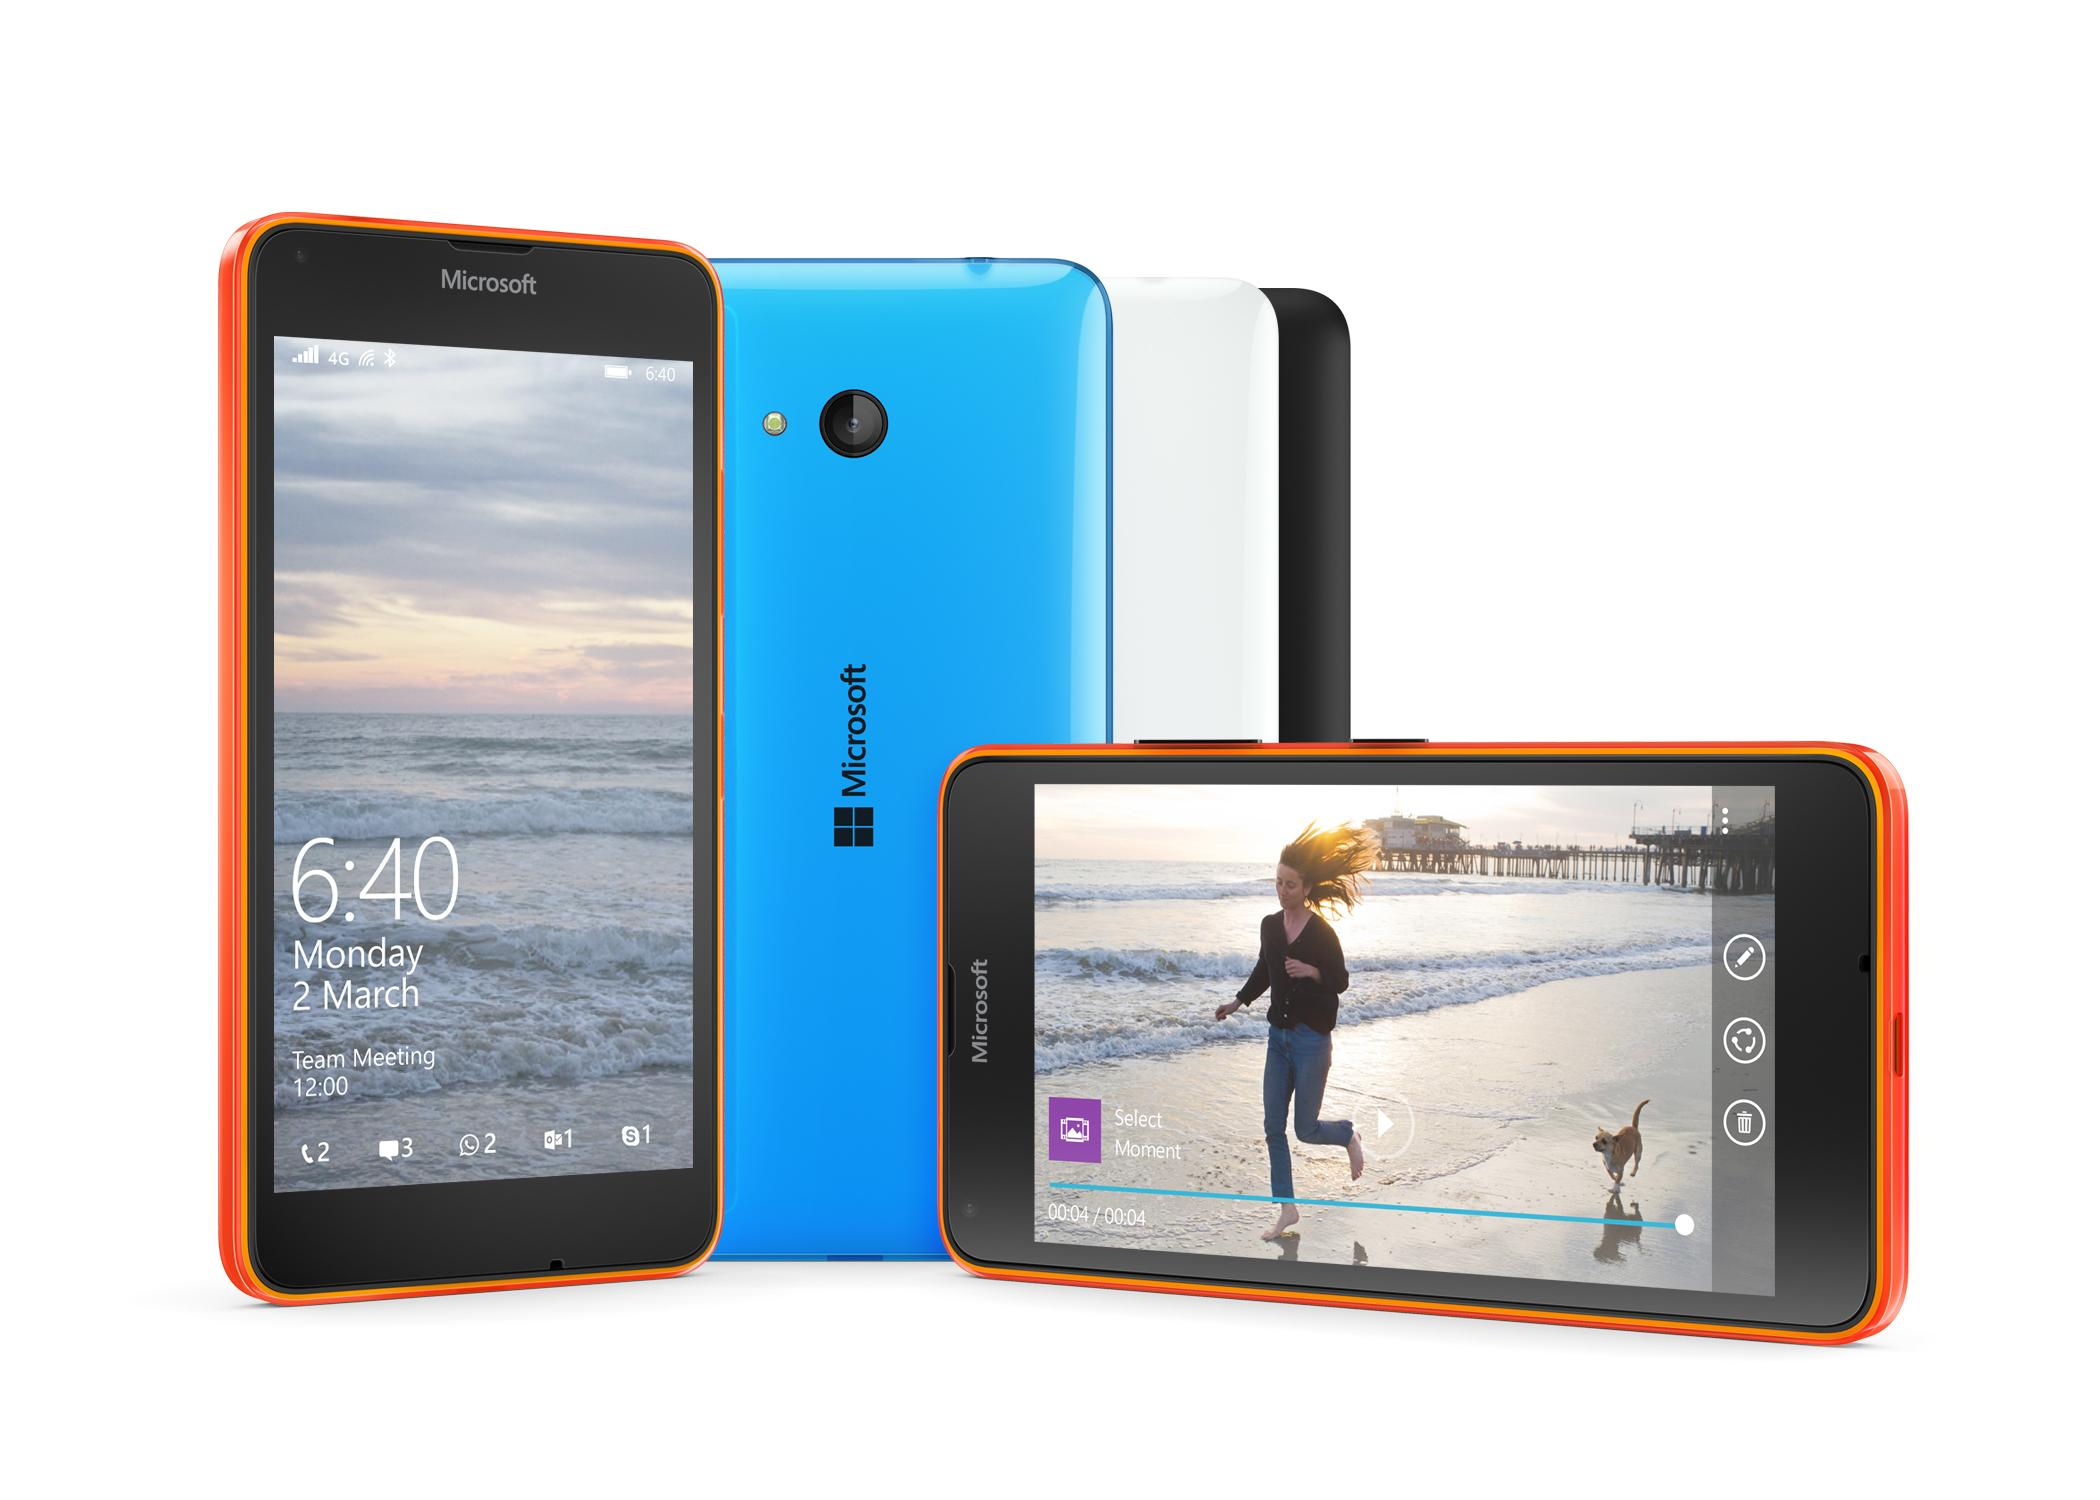 Microsoft Lumia 640 & Lumia 640 XL – Prepared For Anything